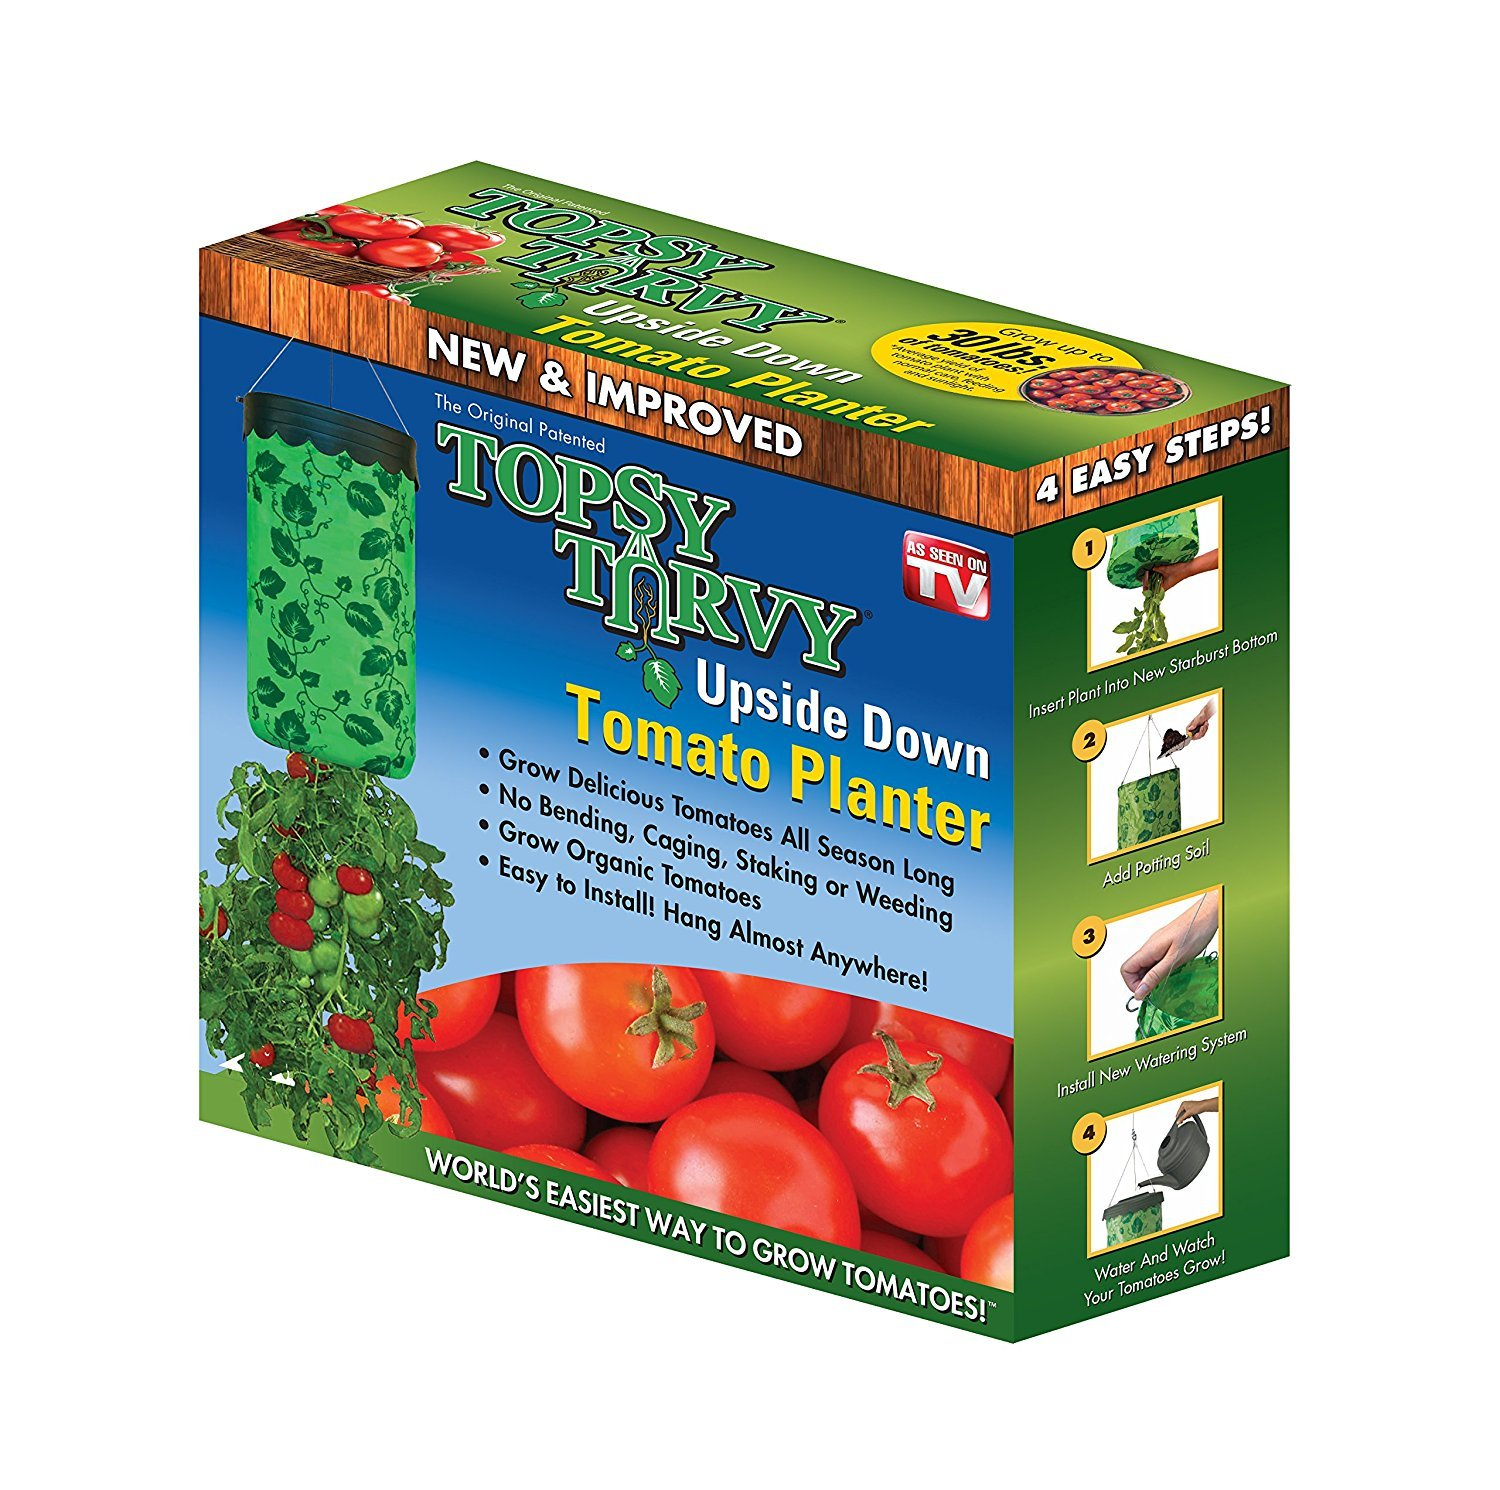 Topsy Turvy Upside Down Tomato Planter Package Detail